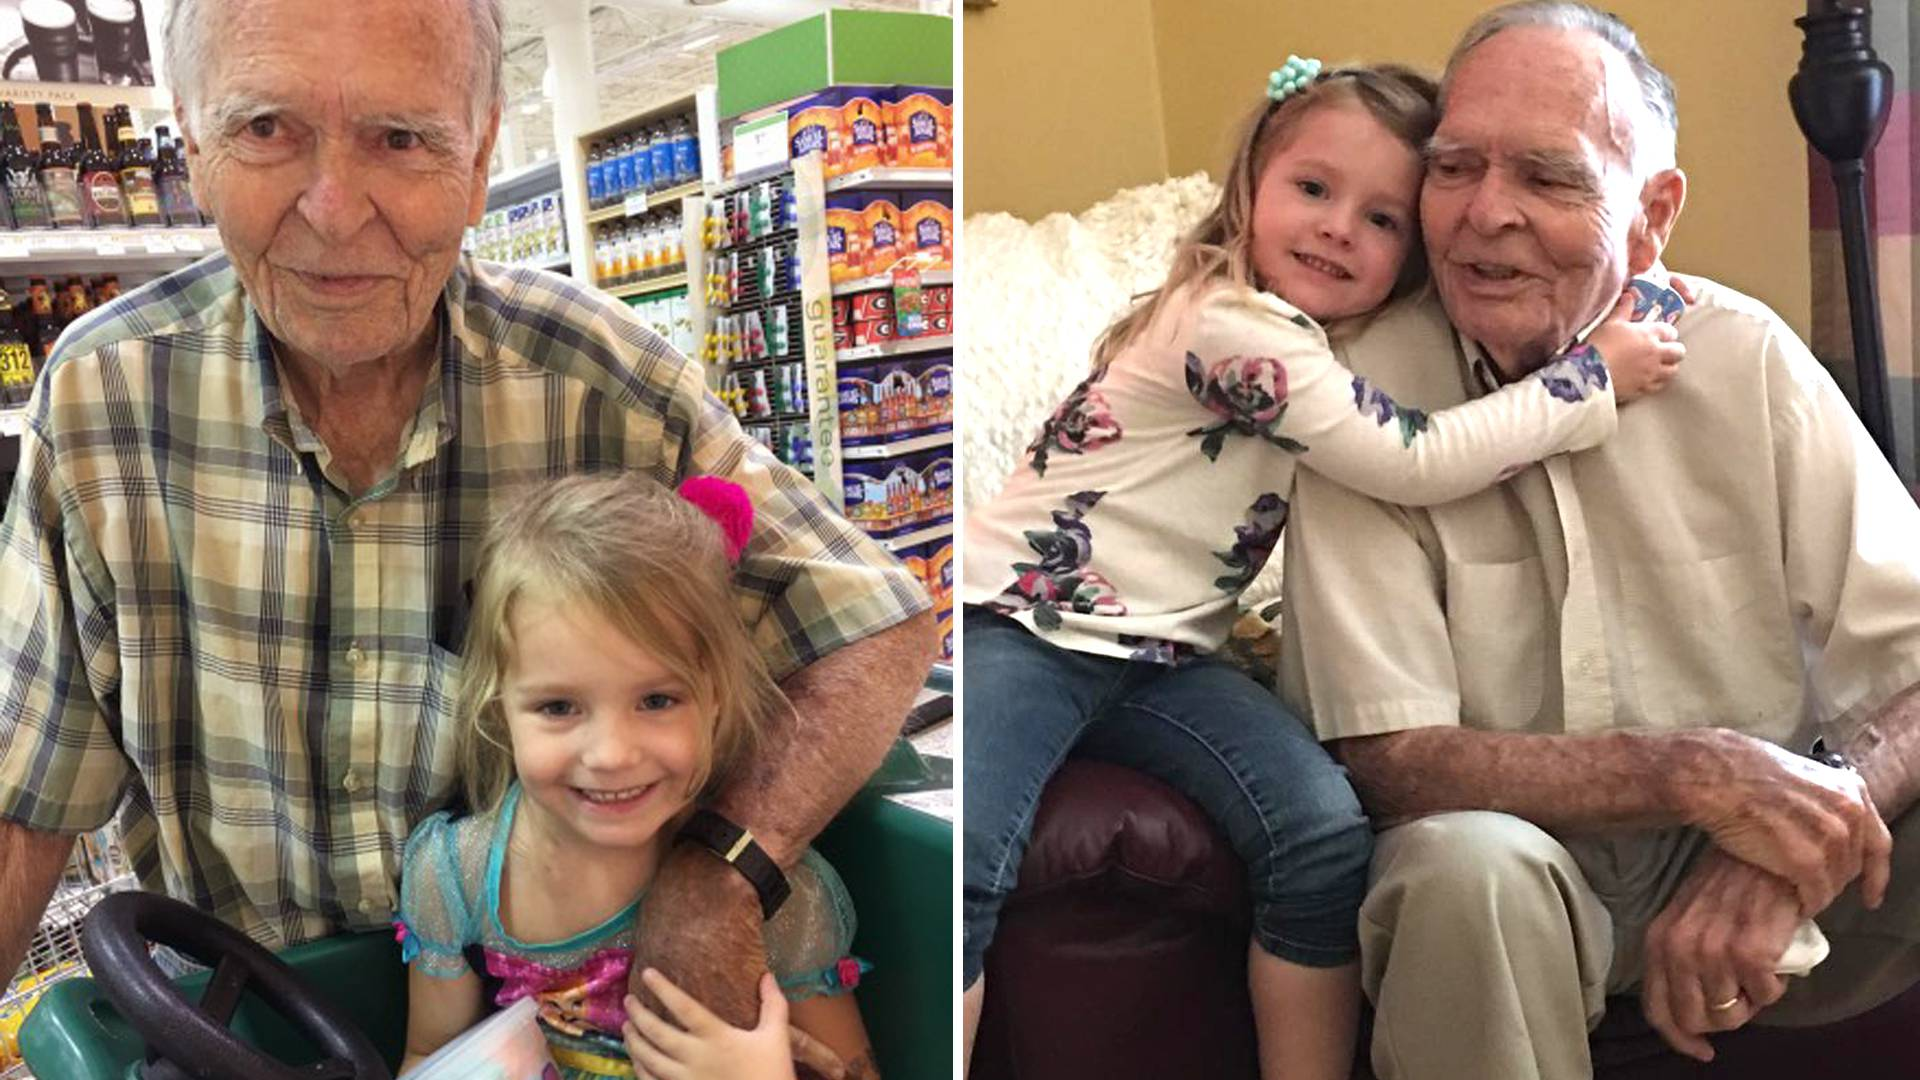 Tara Wood's daughter and her 82 year-old friend